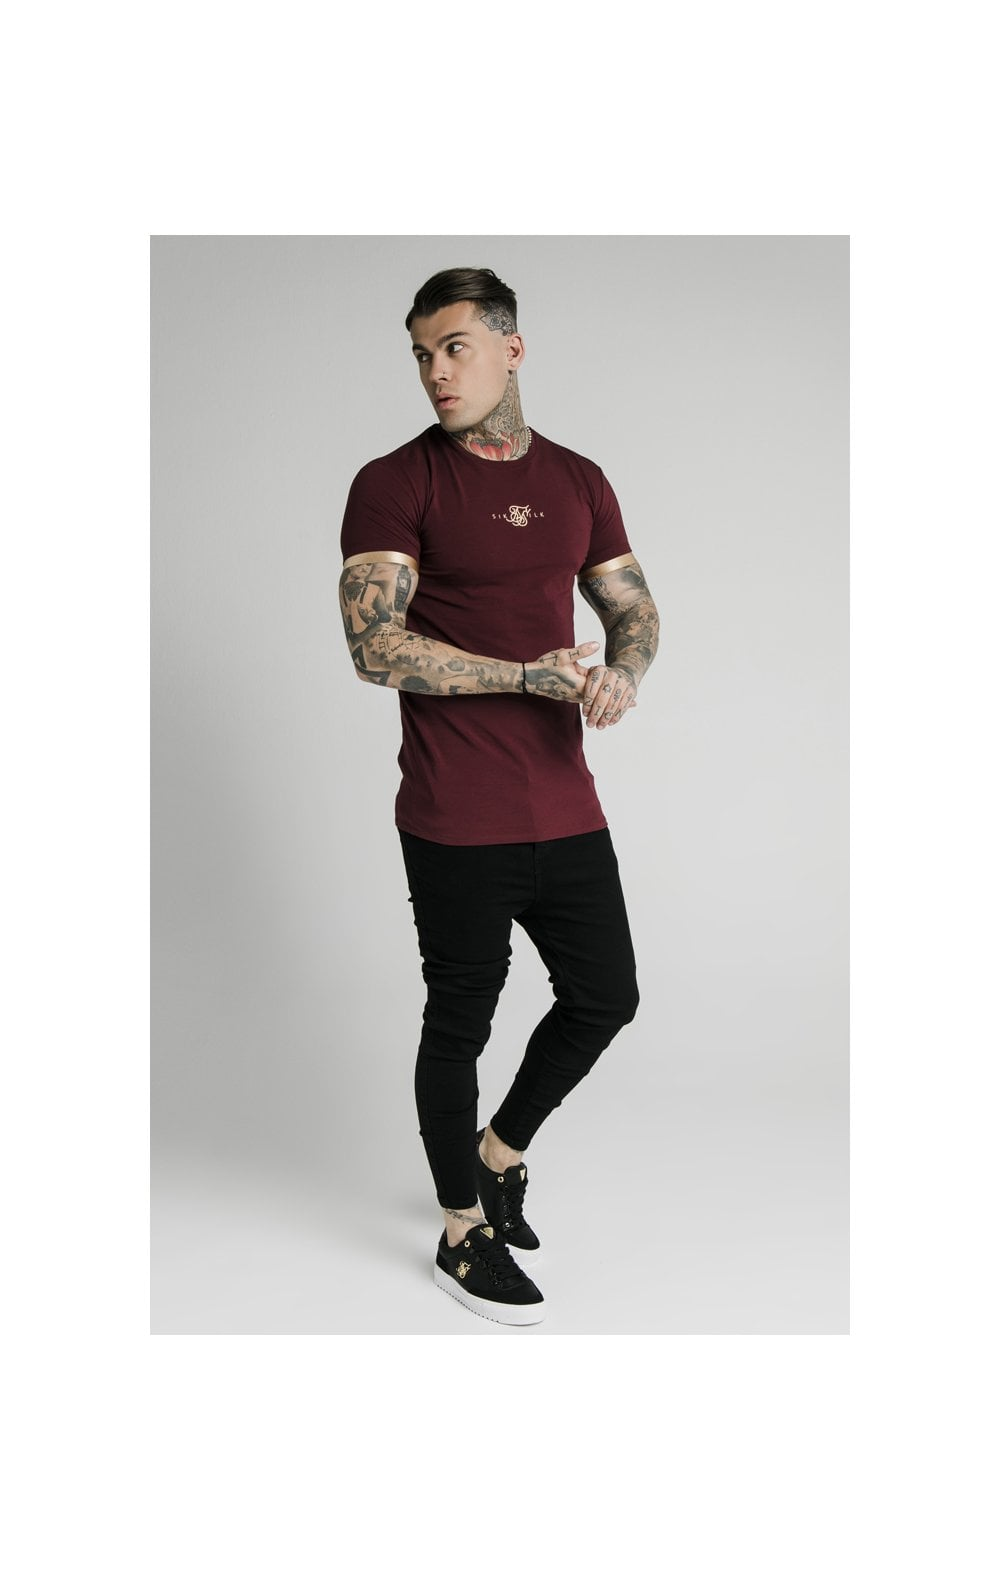 Load image into Gallery viewer, SikSilk S/S Inset Cuff Gym Tee – Burgundy & Gold (2)